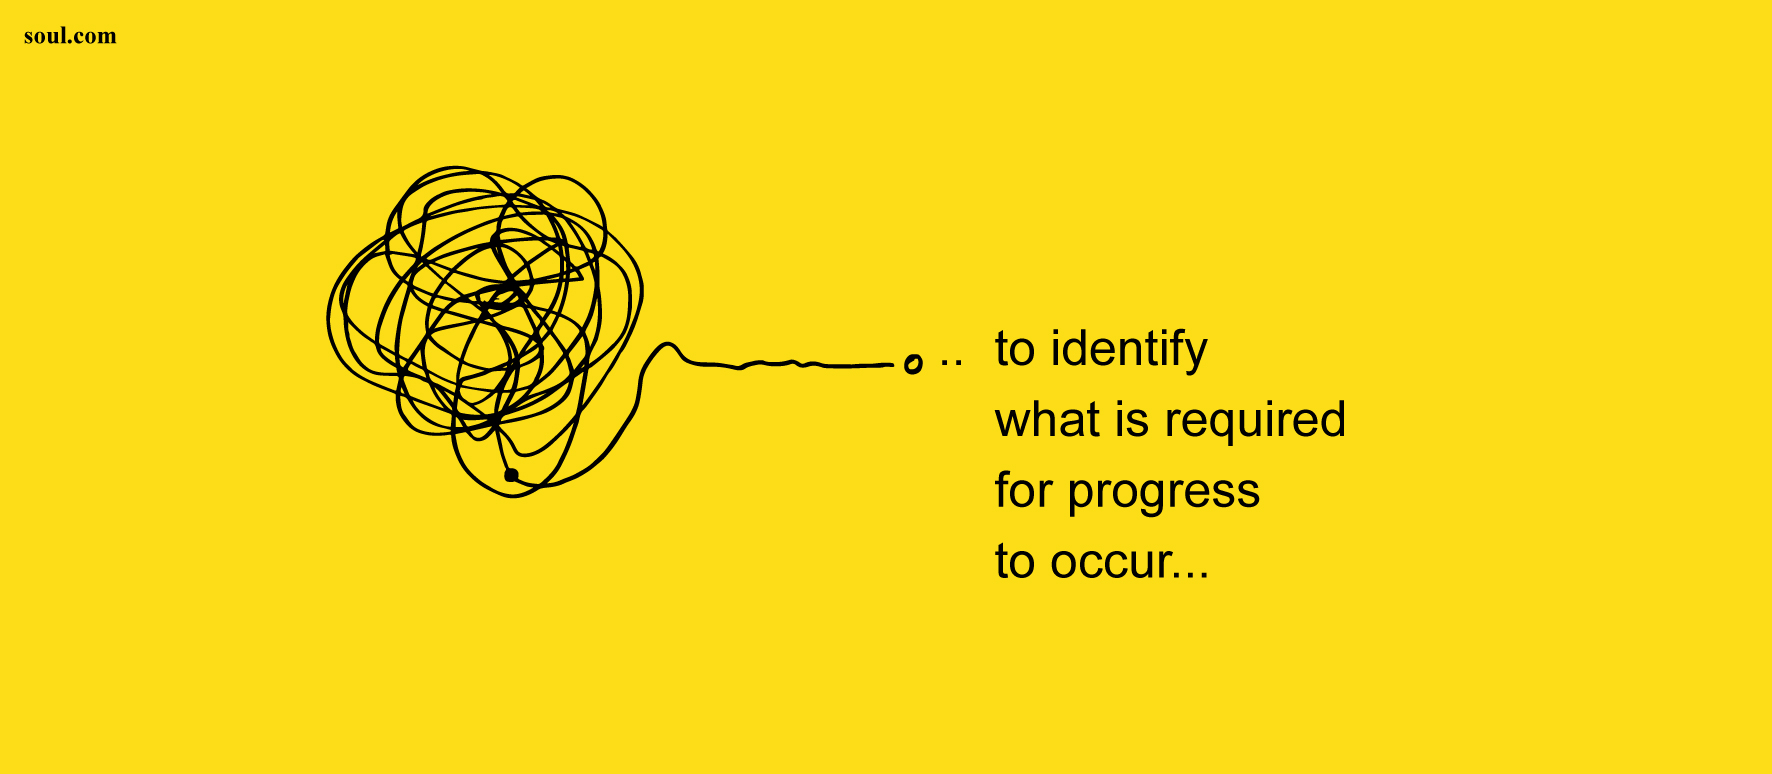 to identify what is required for progress to occur...